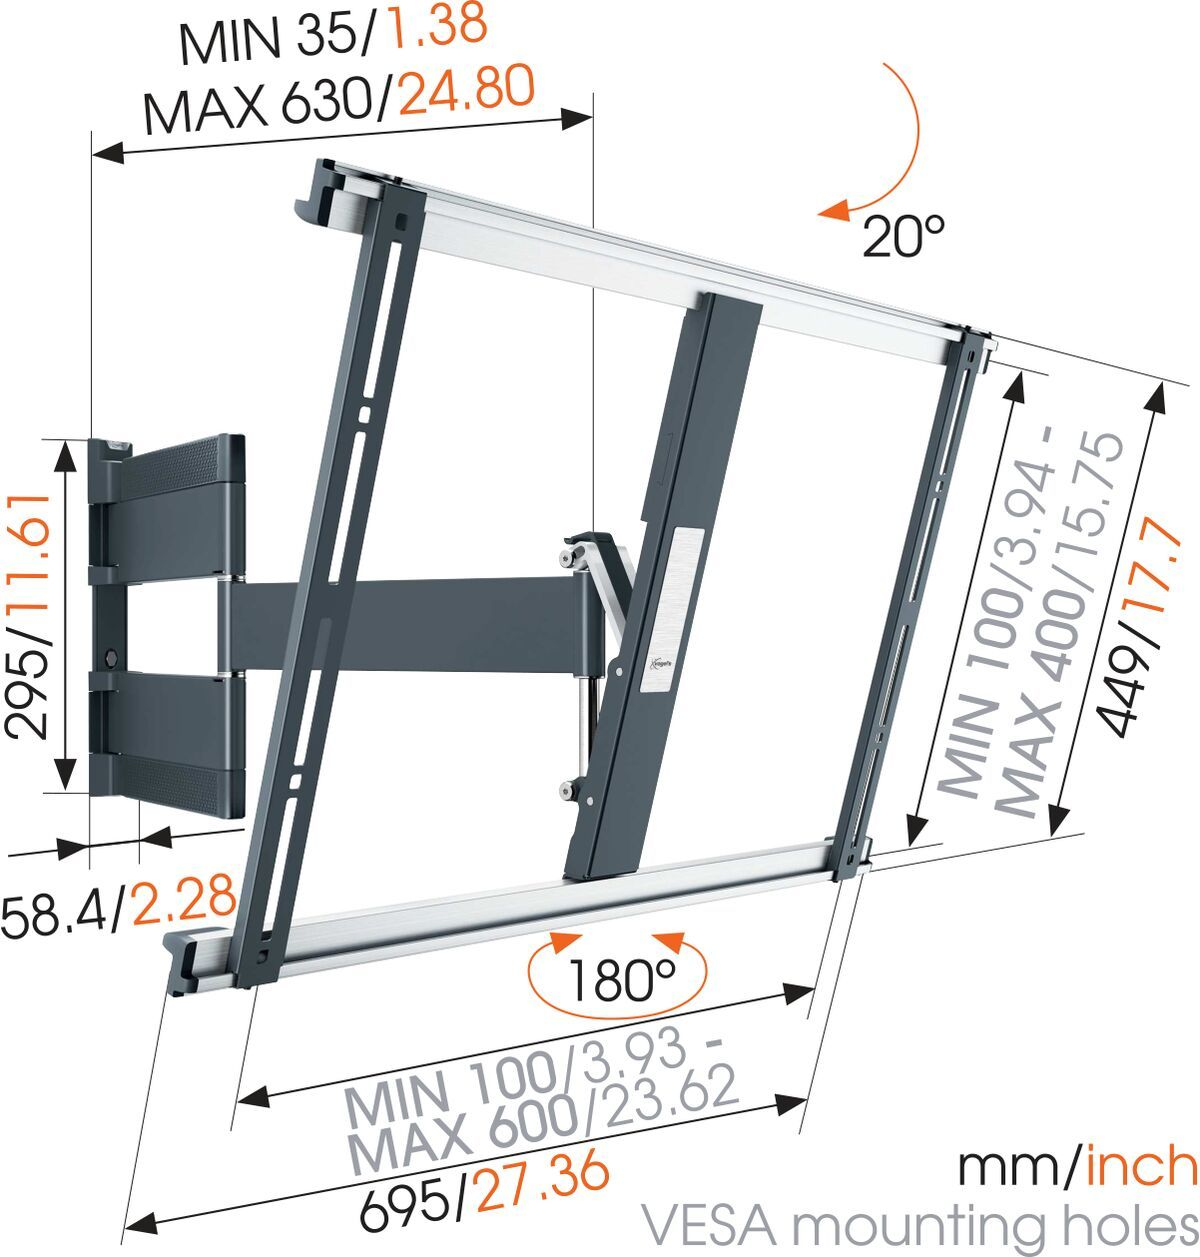 Vogel's THIN 545 ExtraThin Full-Motion TV Wall Mount (black) - Suitable for 40 up to 65 inch TVs - Full motion (up to 180°) - Tilt up to 20° - Dimensions